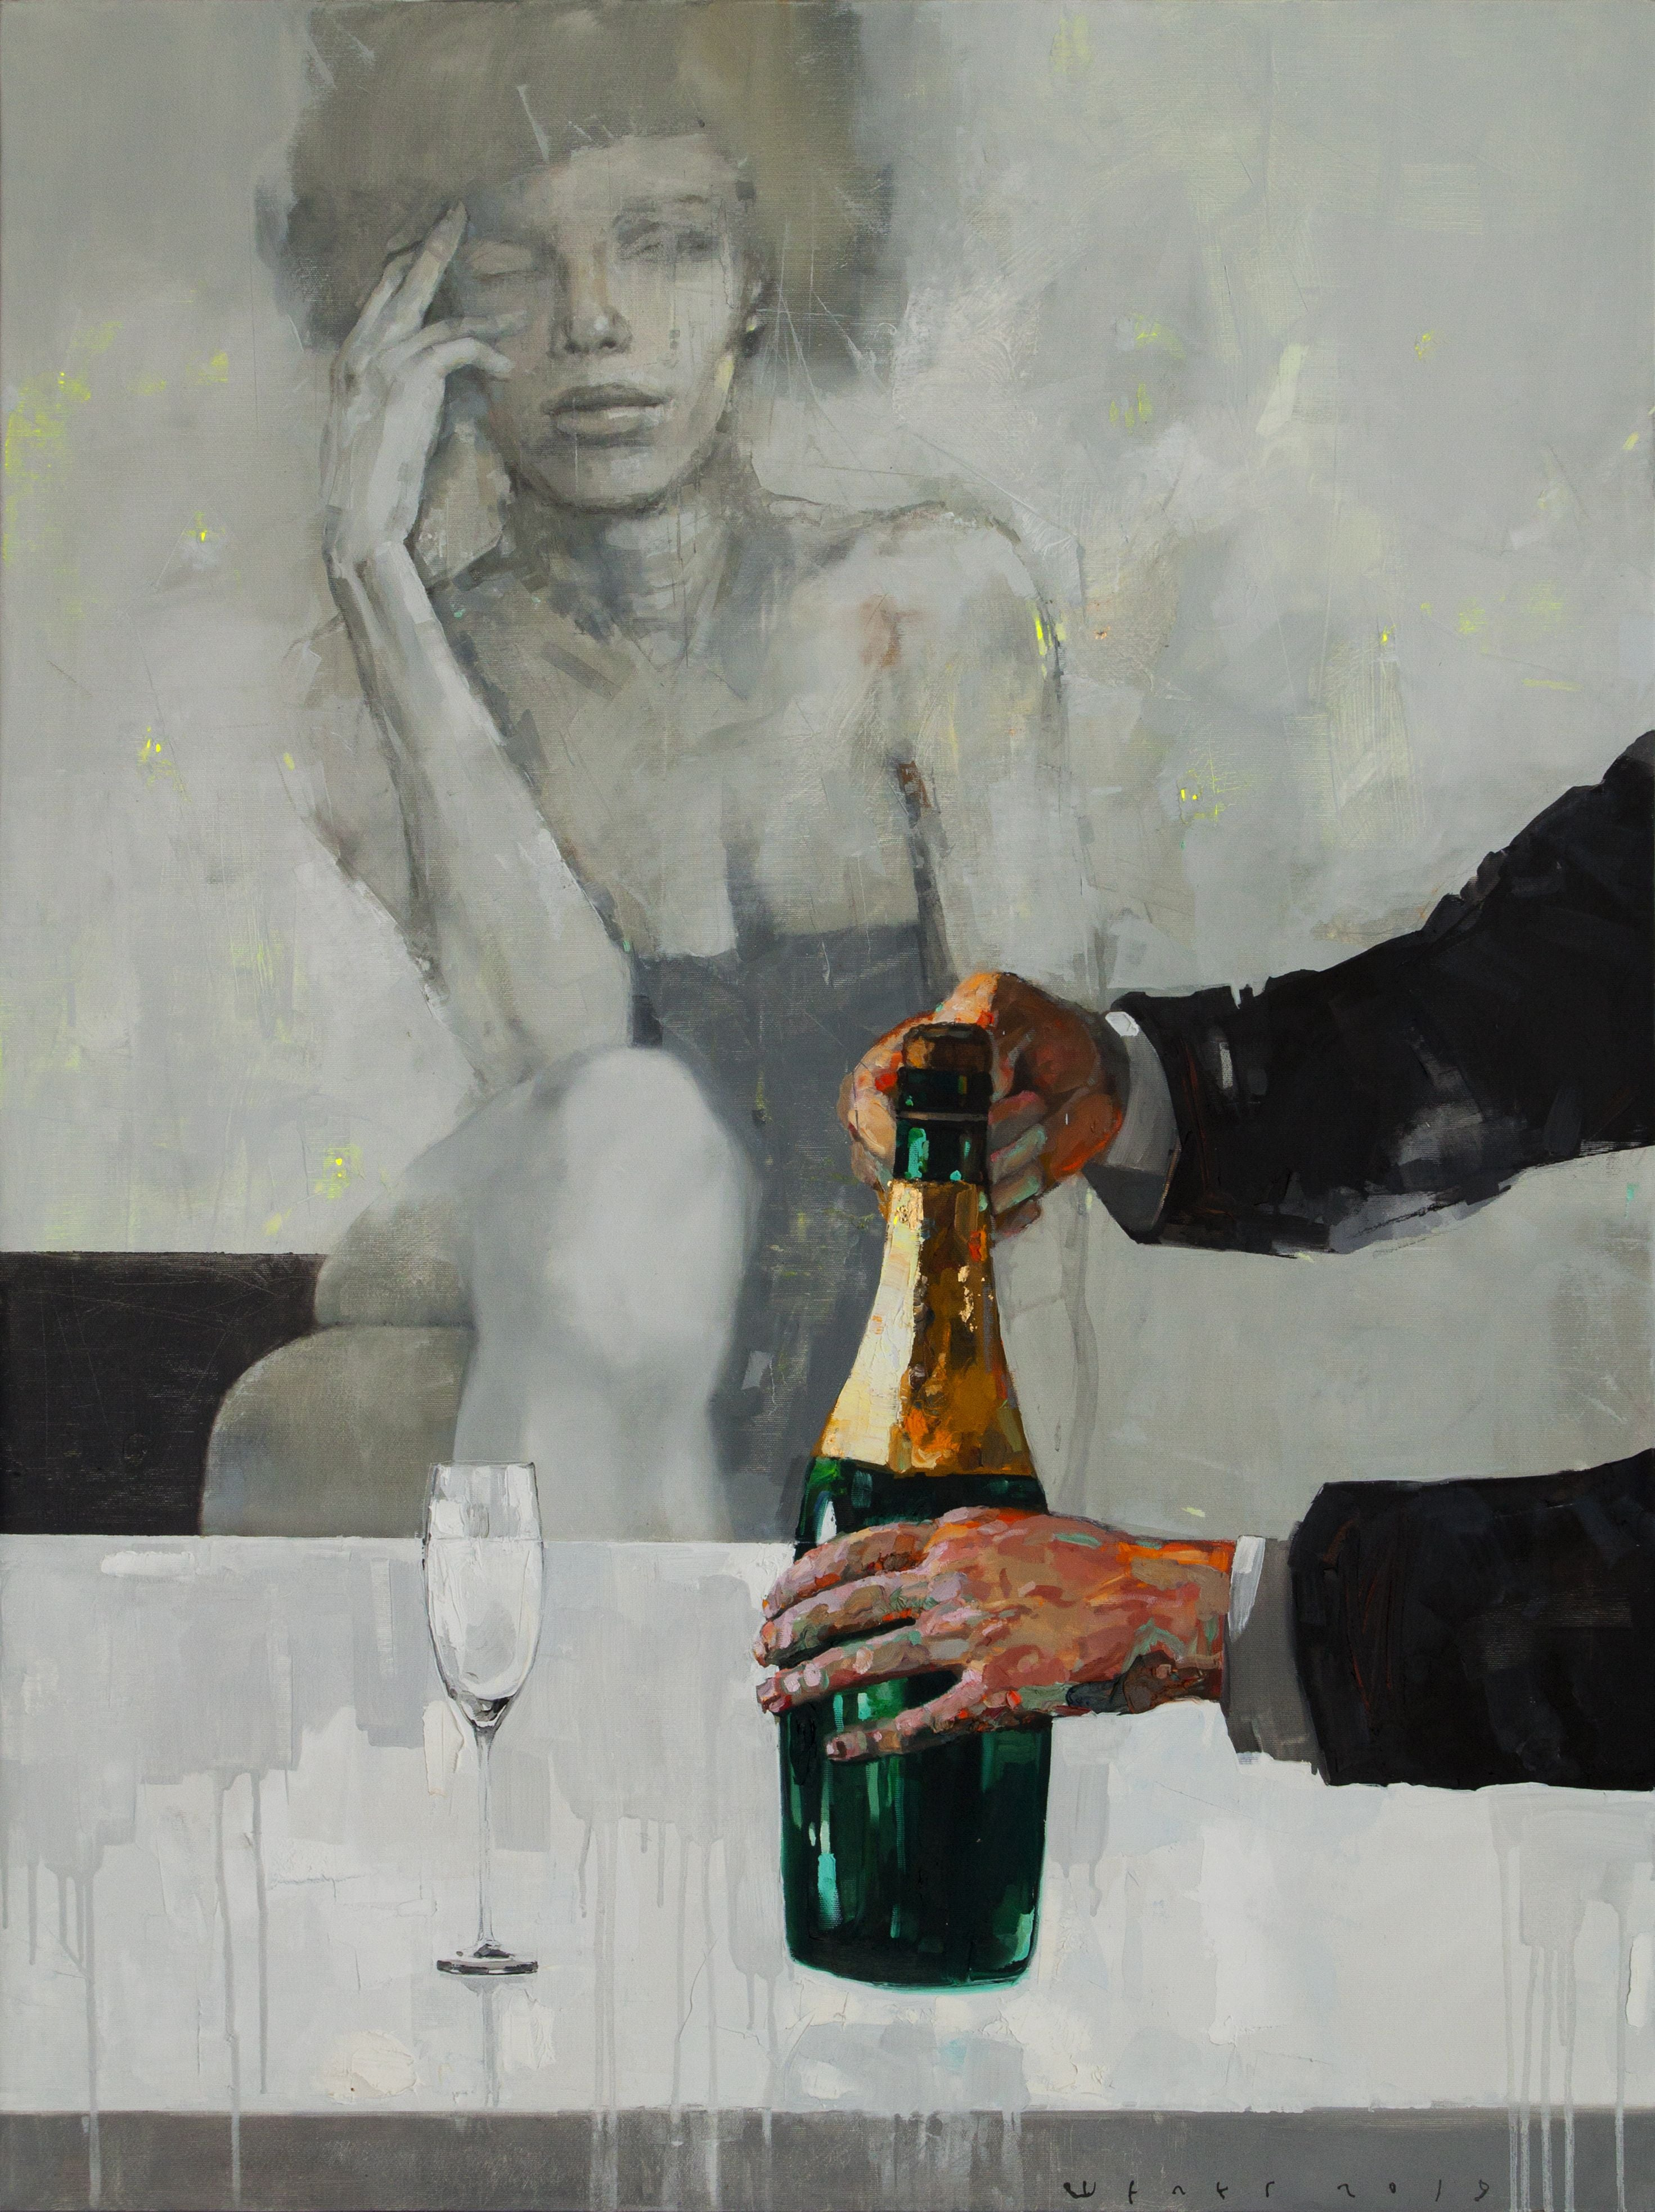 Brut, Painting, Oil on Canvas